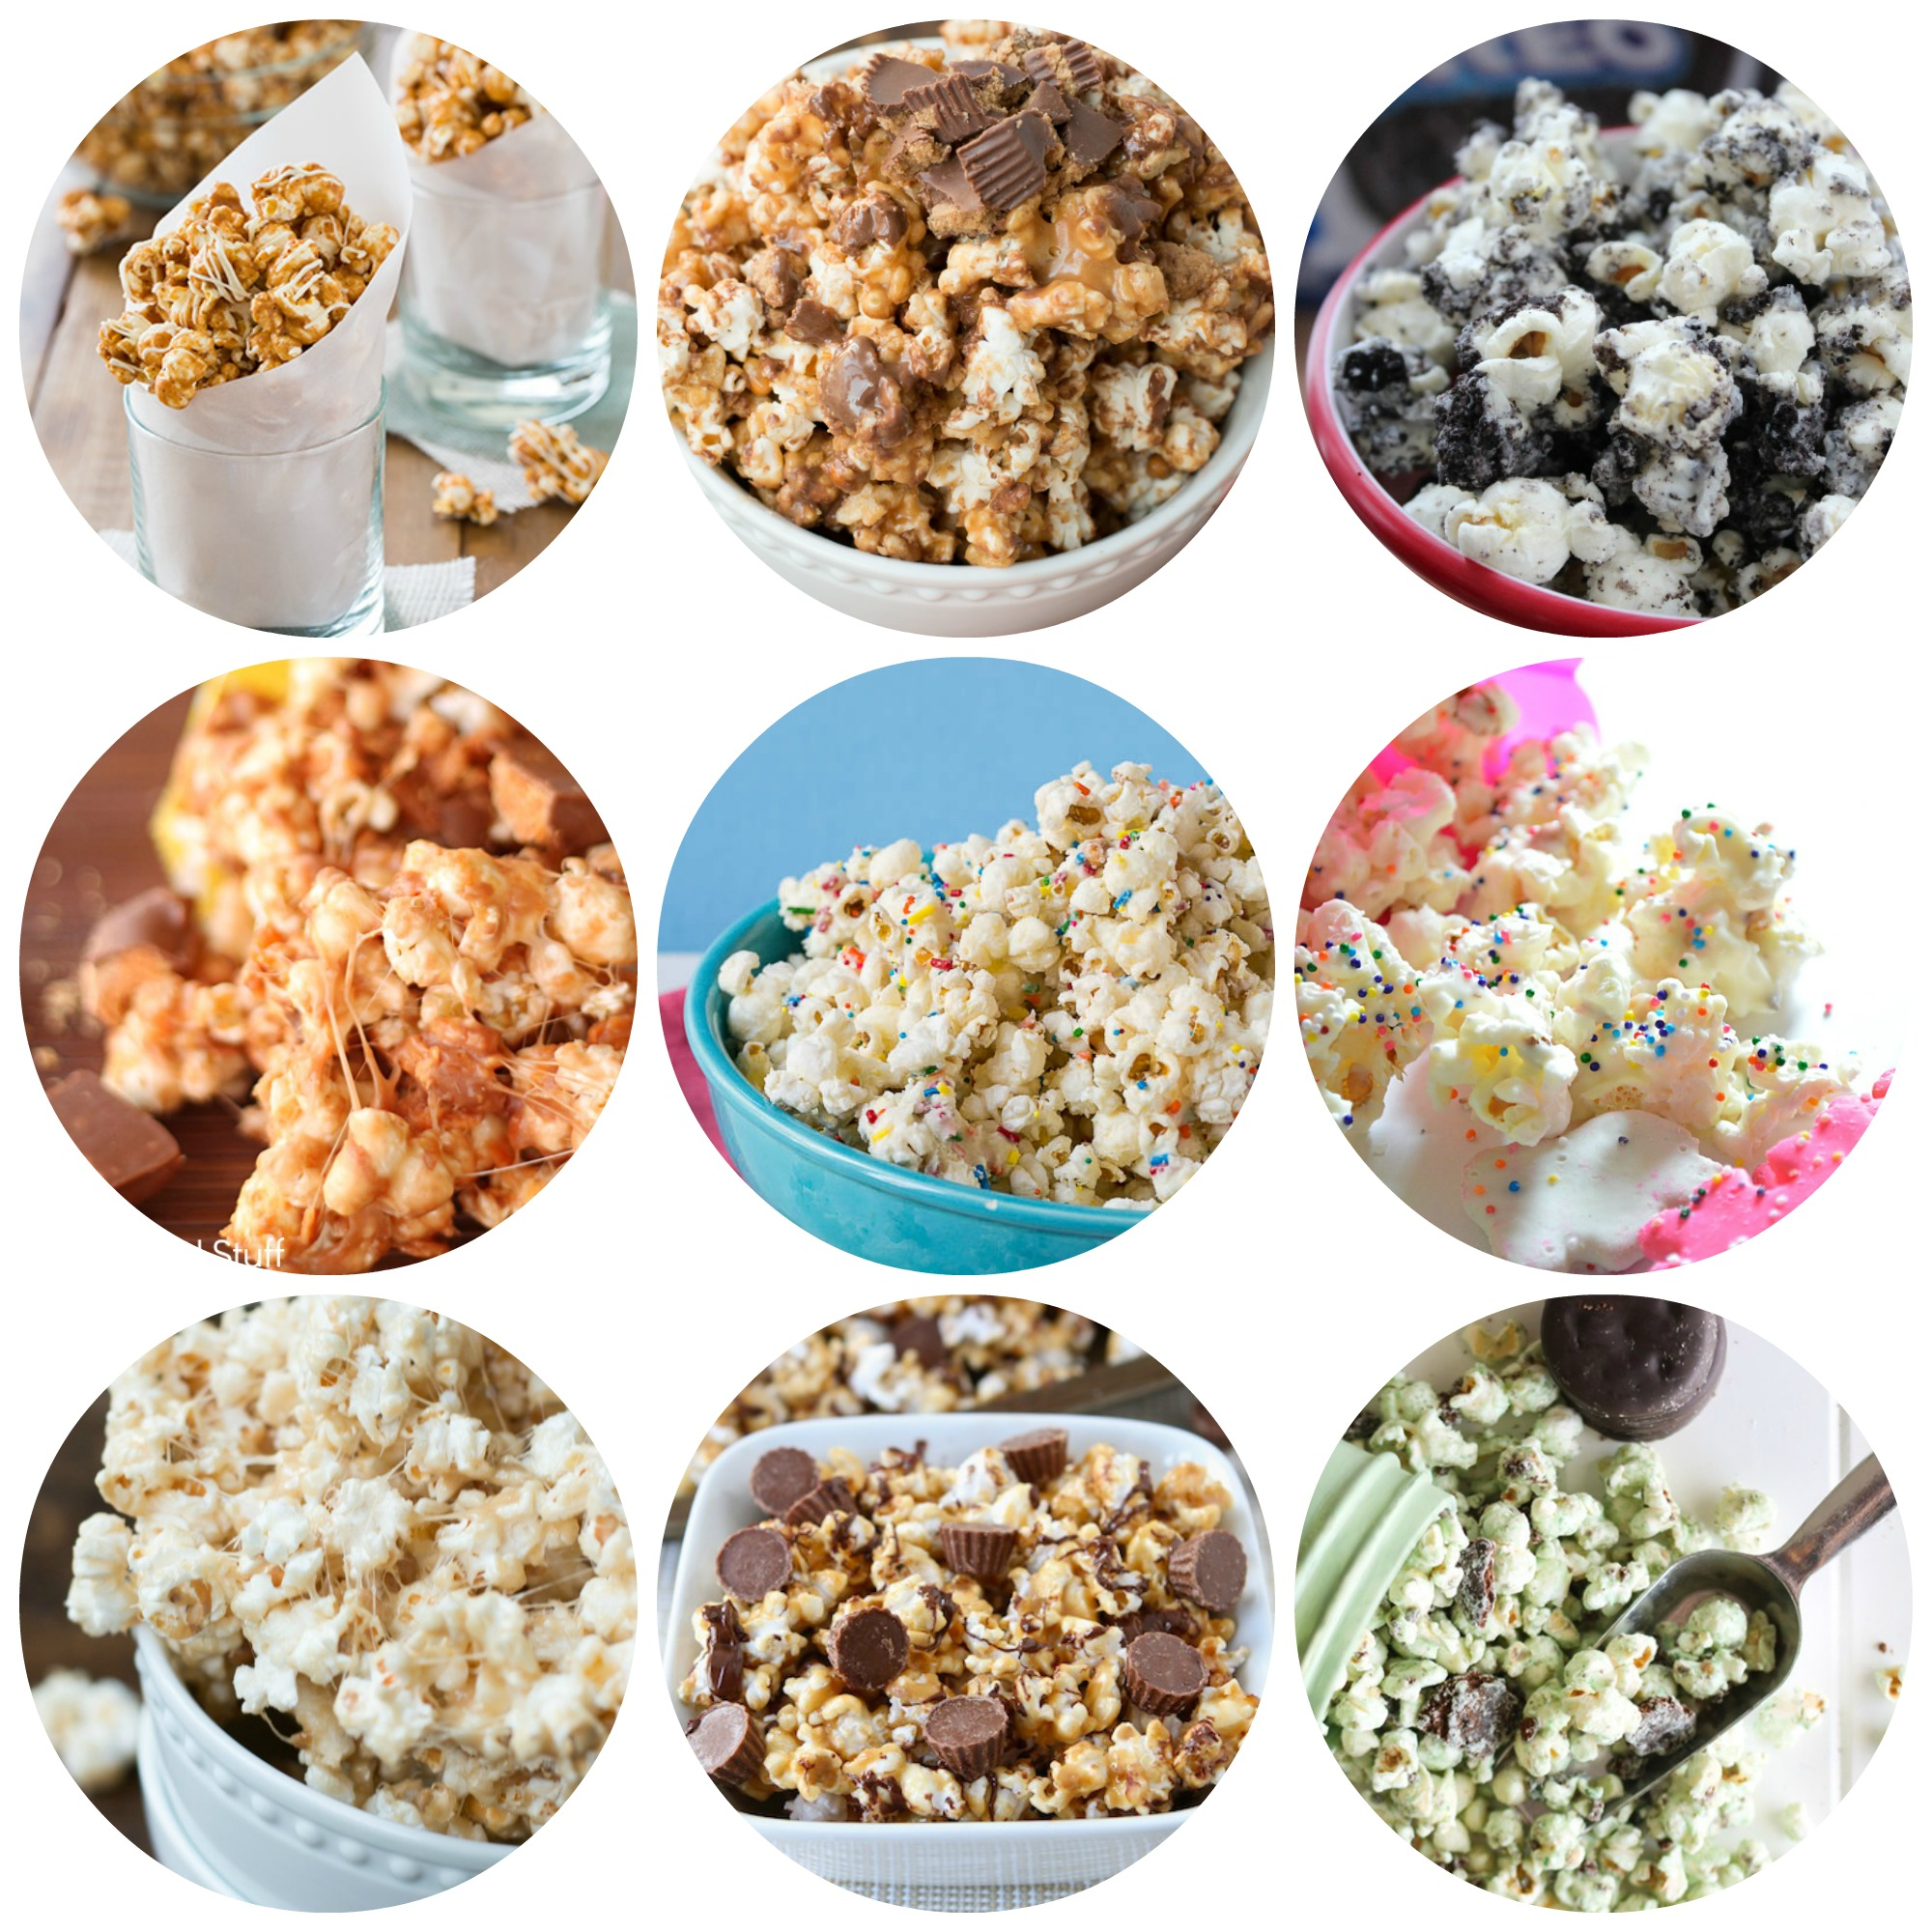 Popcorn for your movie night by reasonstoskipthehousework.com